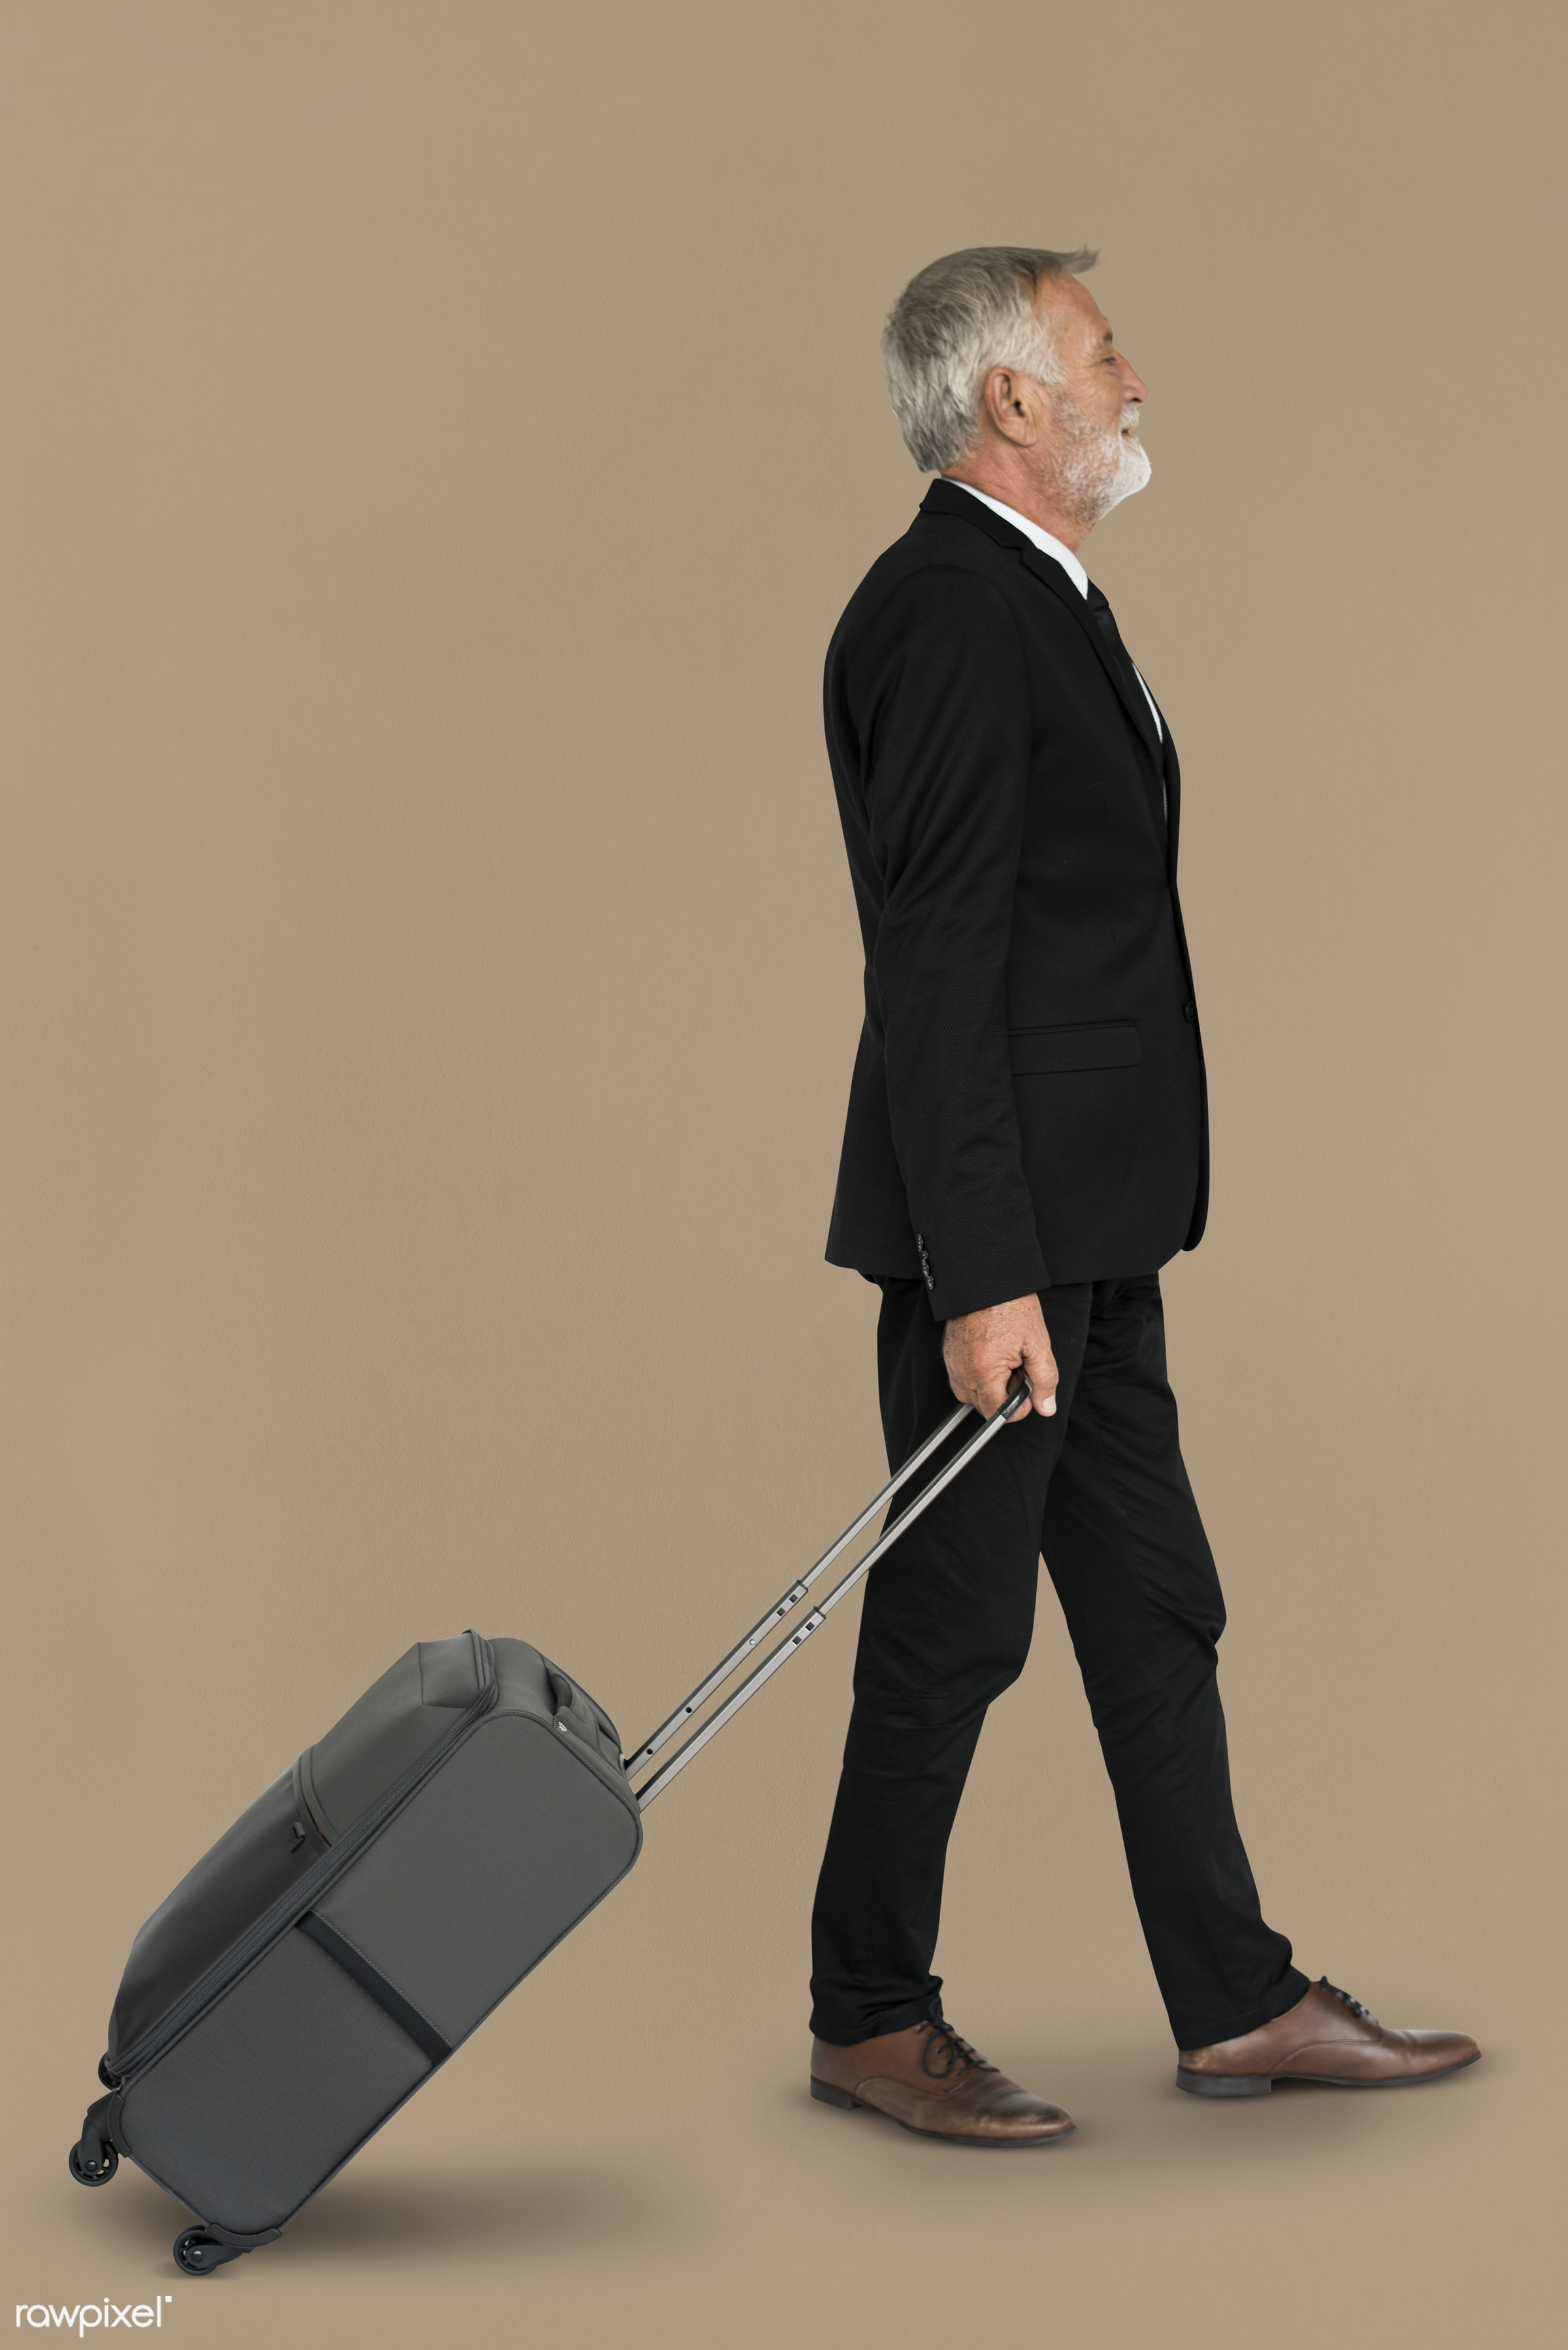 studio, face, person, travel, people, business, businessman, trip, man, isolated, suitcase, male, traveler, business travel...